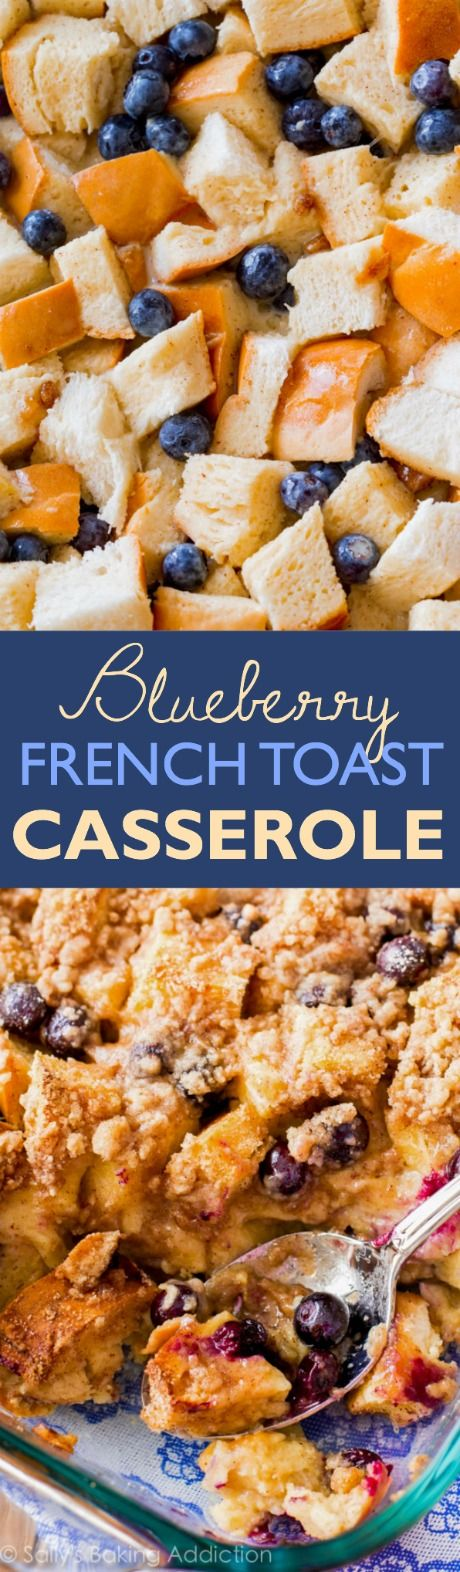 Overnight Blueberry French Toast Casserole-- make ahead breakfast brunch recipe found on sallysbakingaddiction.com